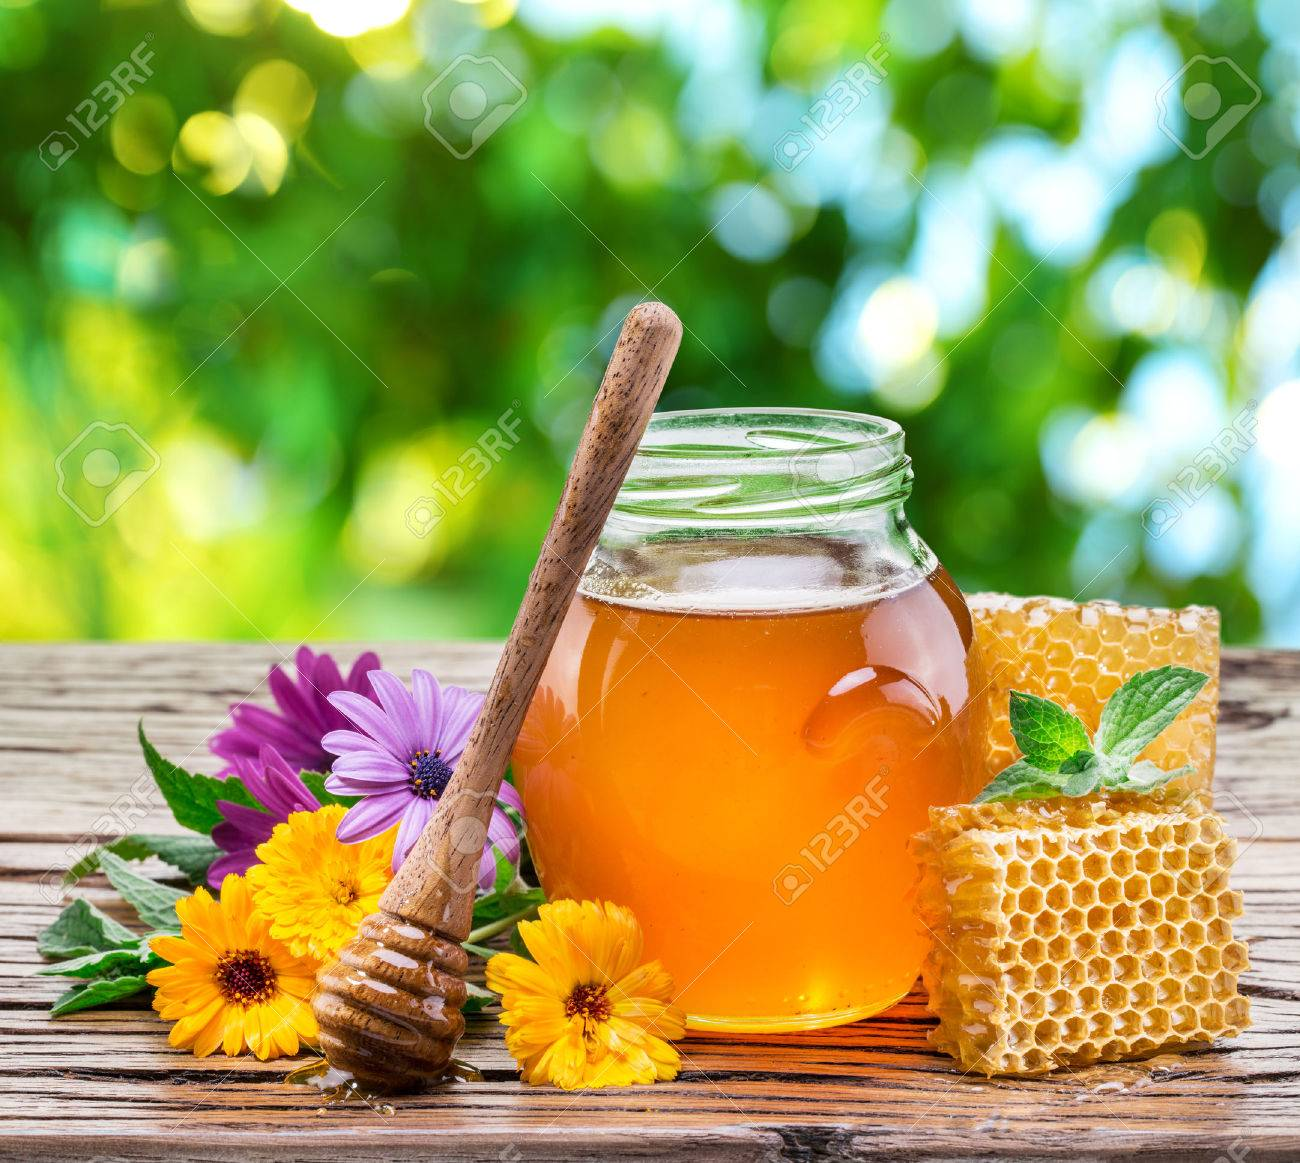 Jar full of fresh honey and honeycombs. High-quality picture. Standard-Bild - 48440585